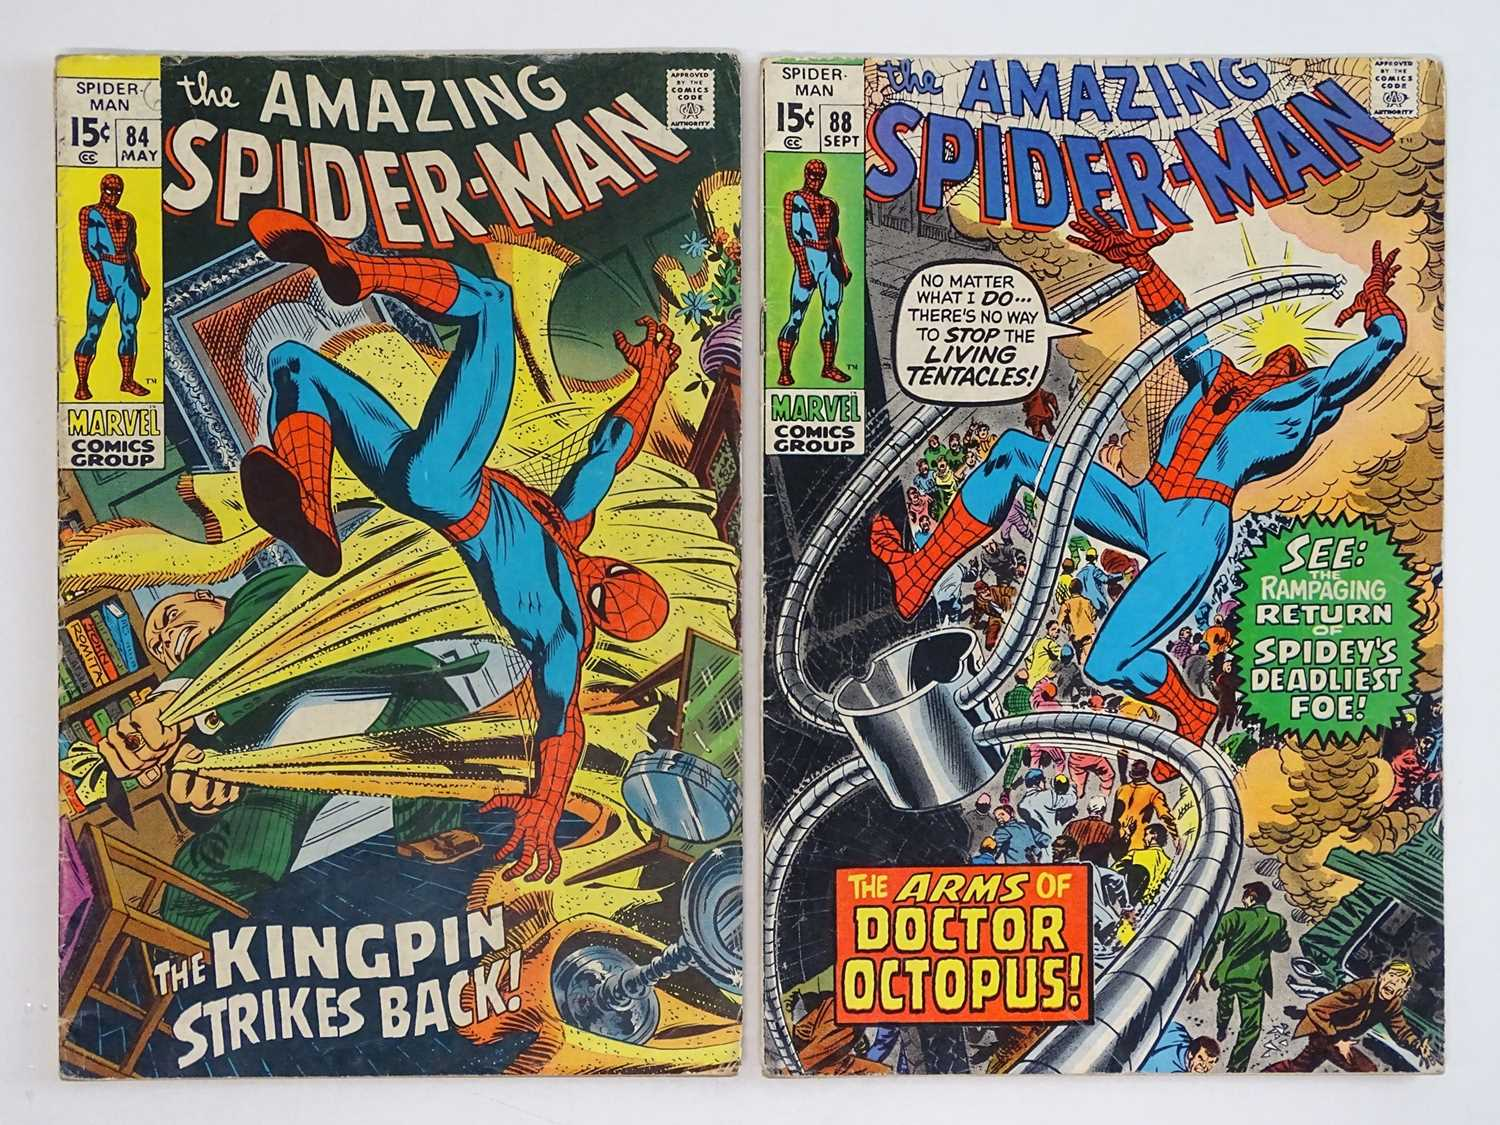 AMAZING SPIDER-MAN #84 & 88 - (2 in Lot) - (1970 - MARVEL) - Includes Kingpin, Doctor Octopus